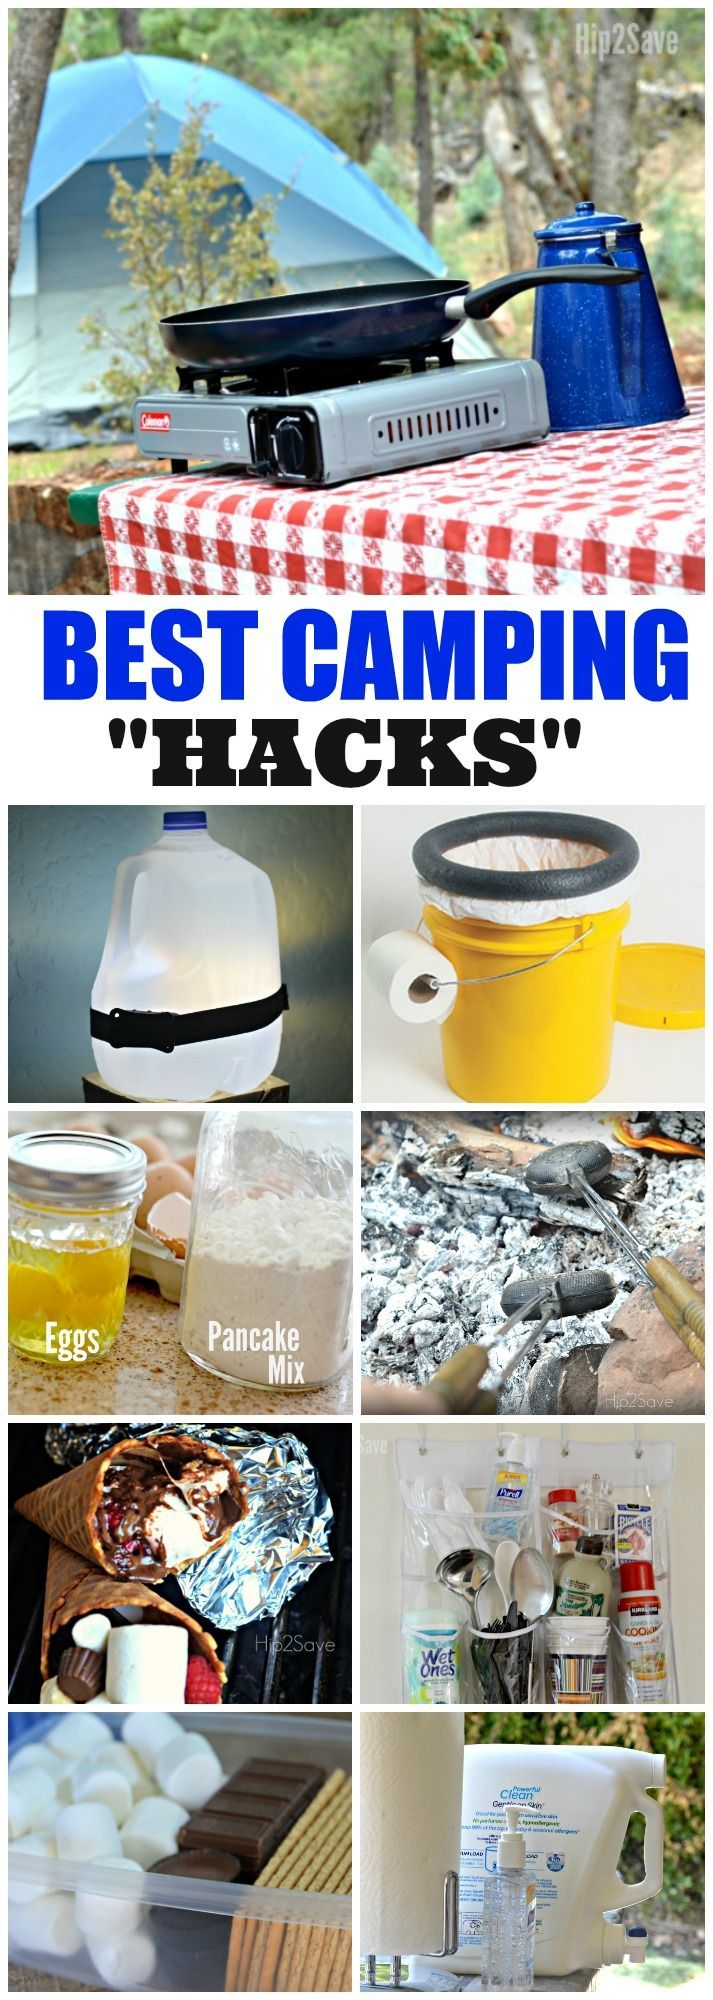 10 Camping Hacks & Tips (DIY Outdoor Toilet, Campfire Cones + More) – Hip2Save